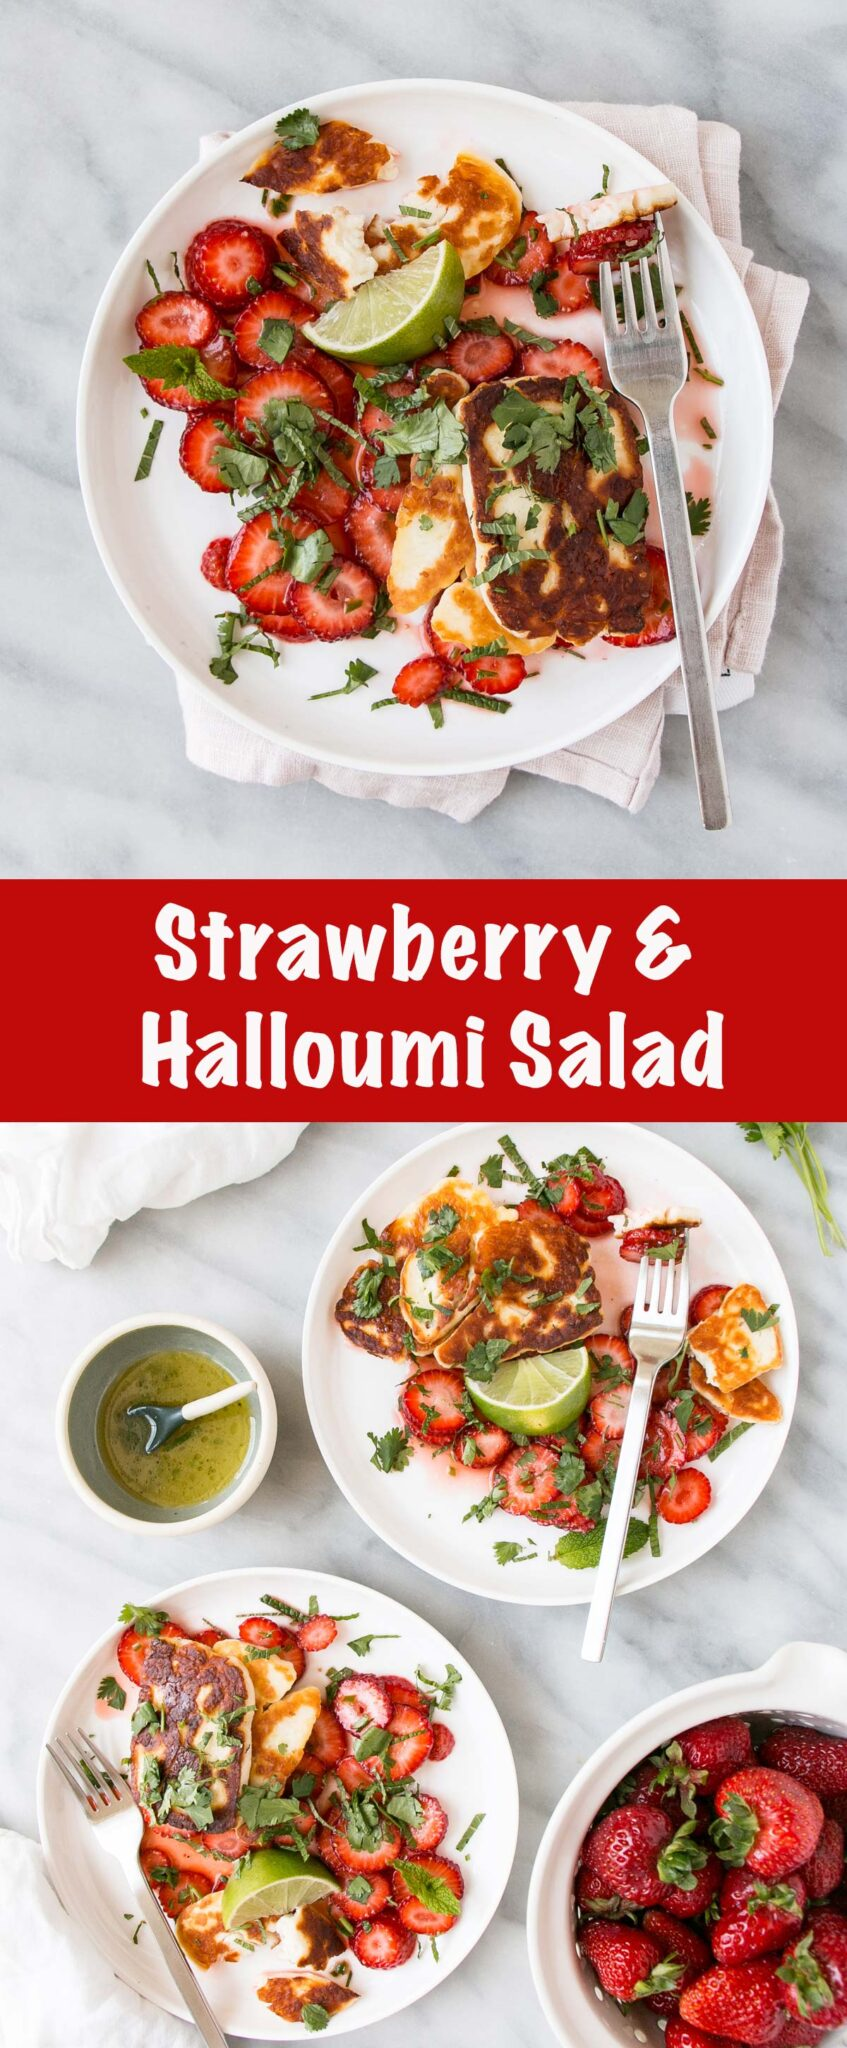 Halloumi and Strawberry Salad on white plates in a long collage.